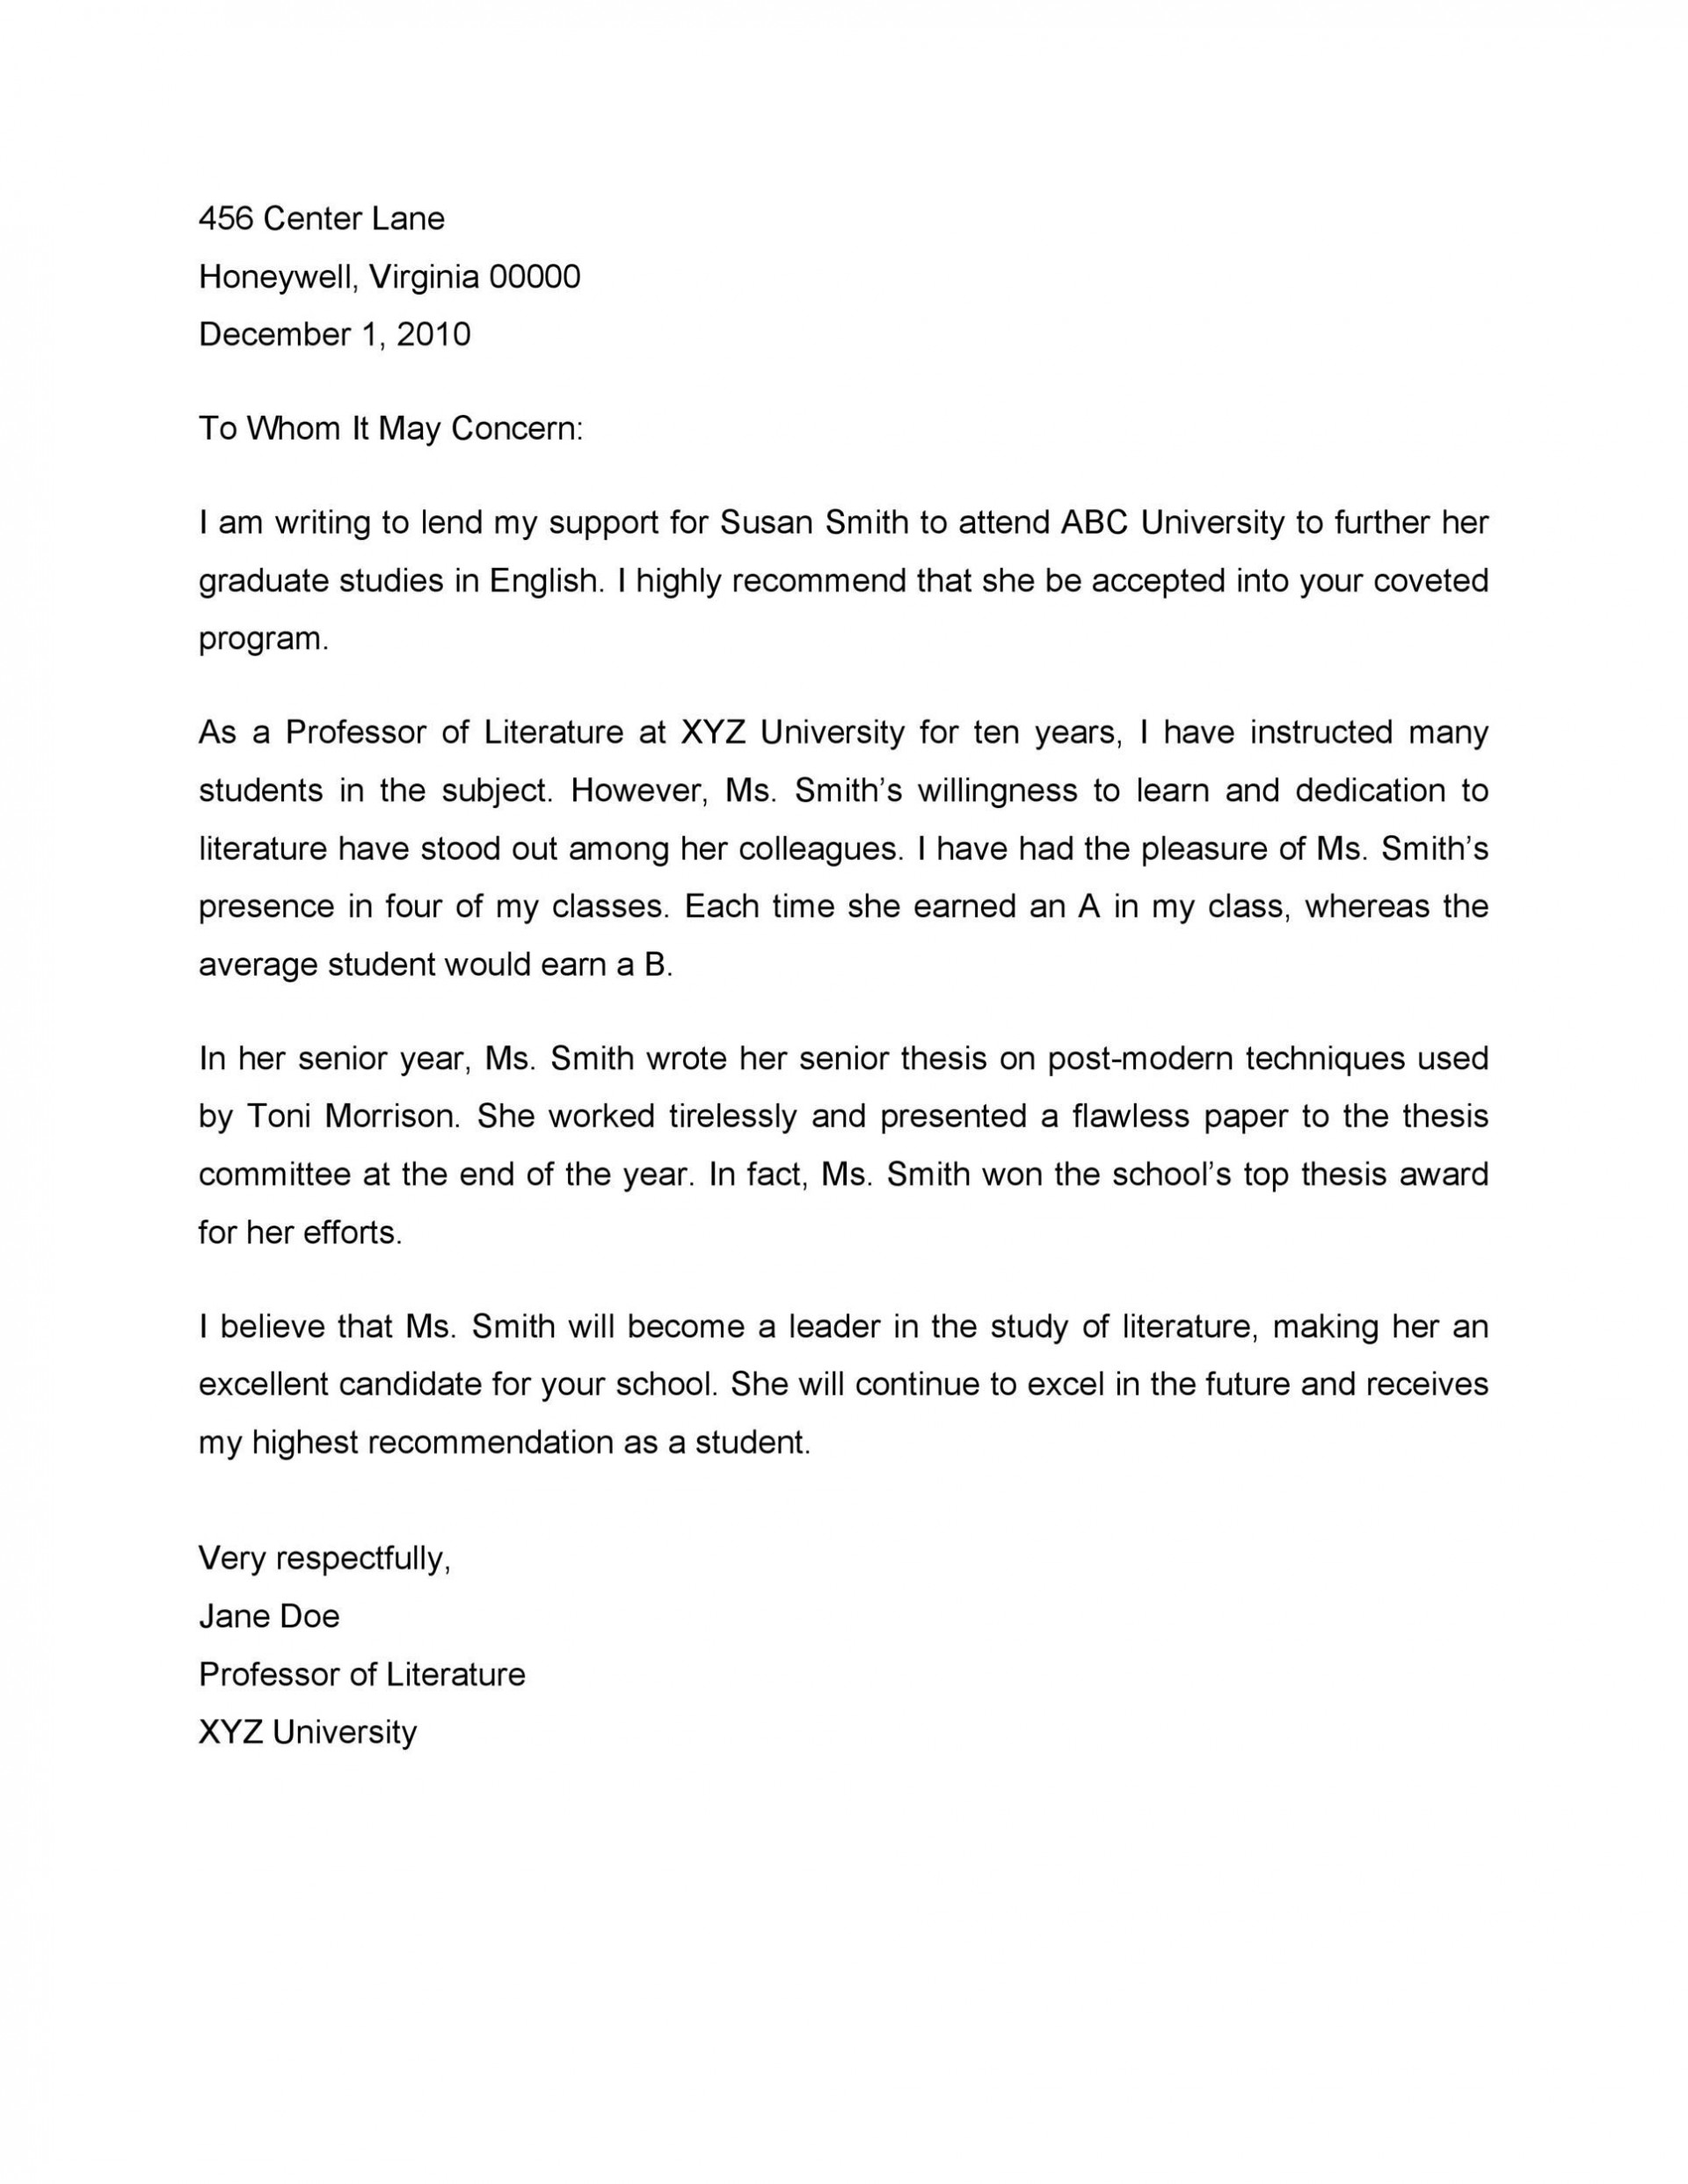 Sample Recommendation Letter For Internship from www.addictionary.org